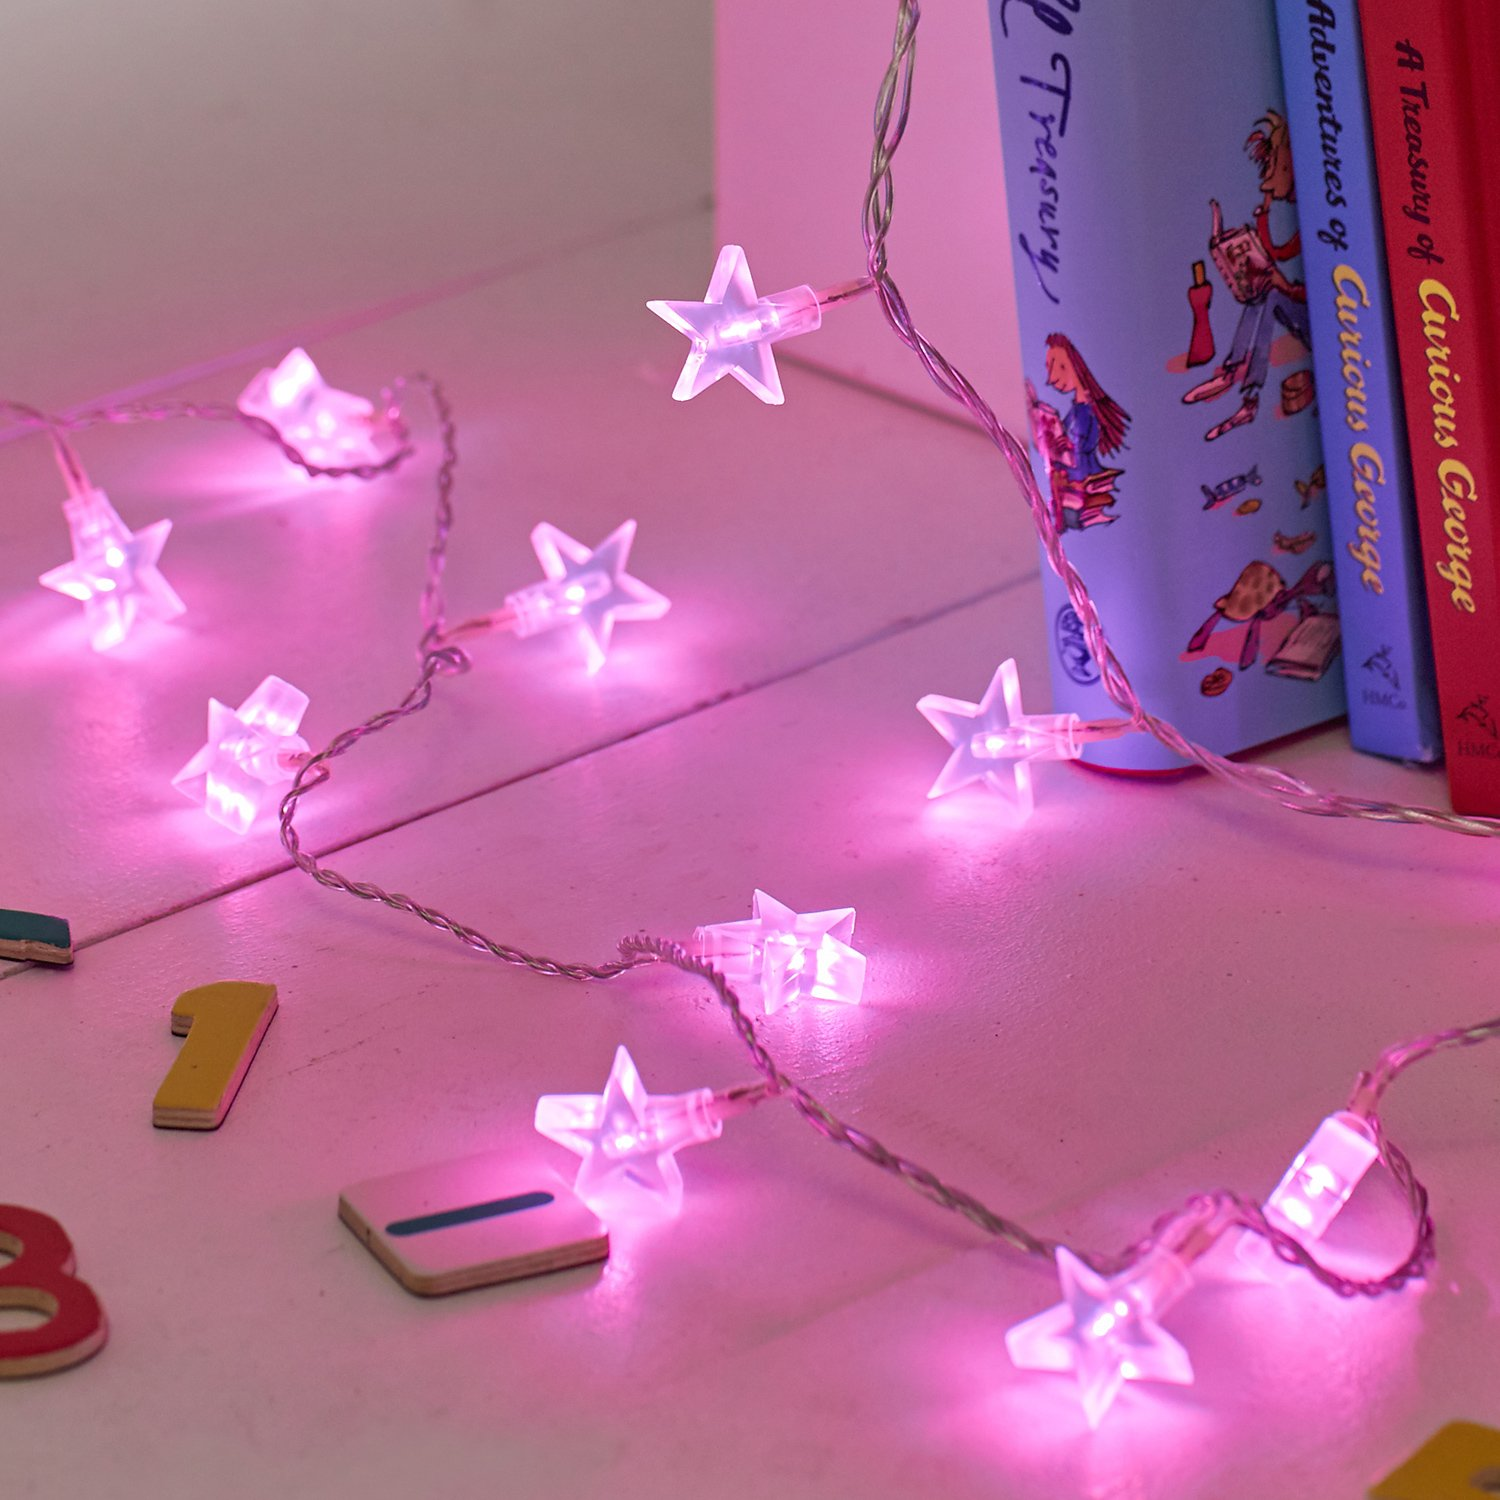 Indoor Star Fairy Lights With Pink LEDs By Lightsfun Amazon - Star lights in bedroom